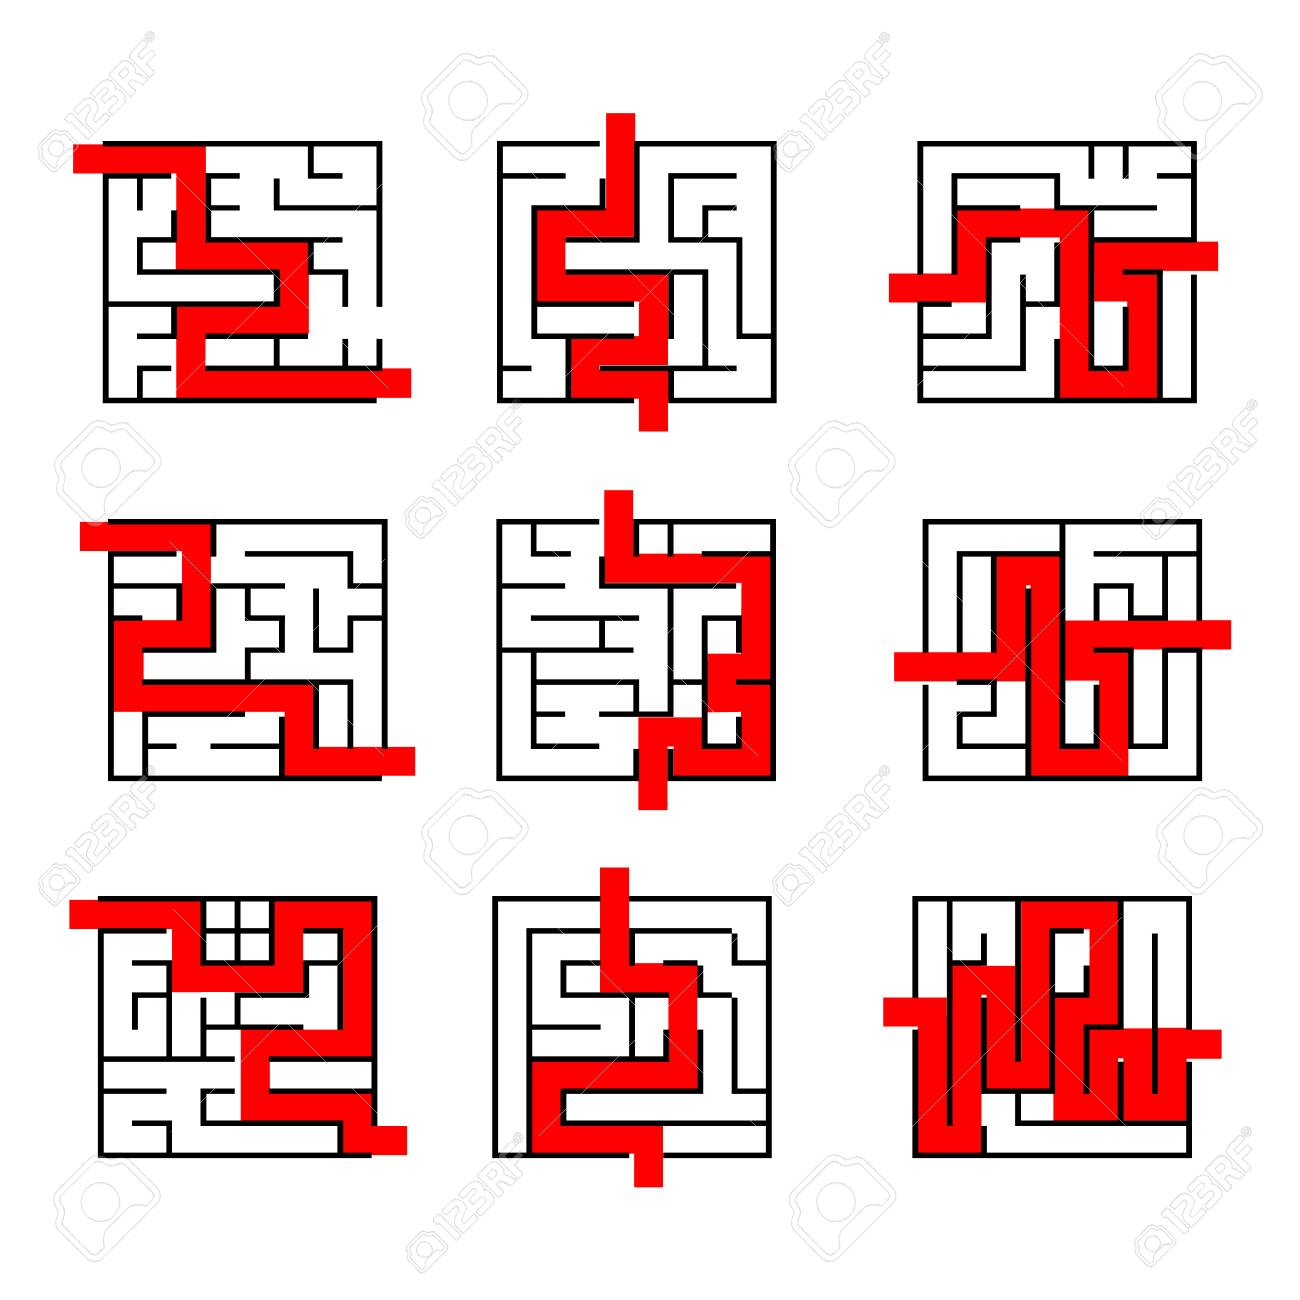 Collection Of Easy Maze Puzzle Game 2 Black And White Labyrinth